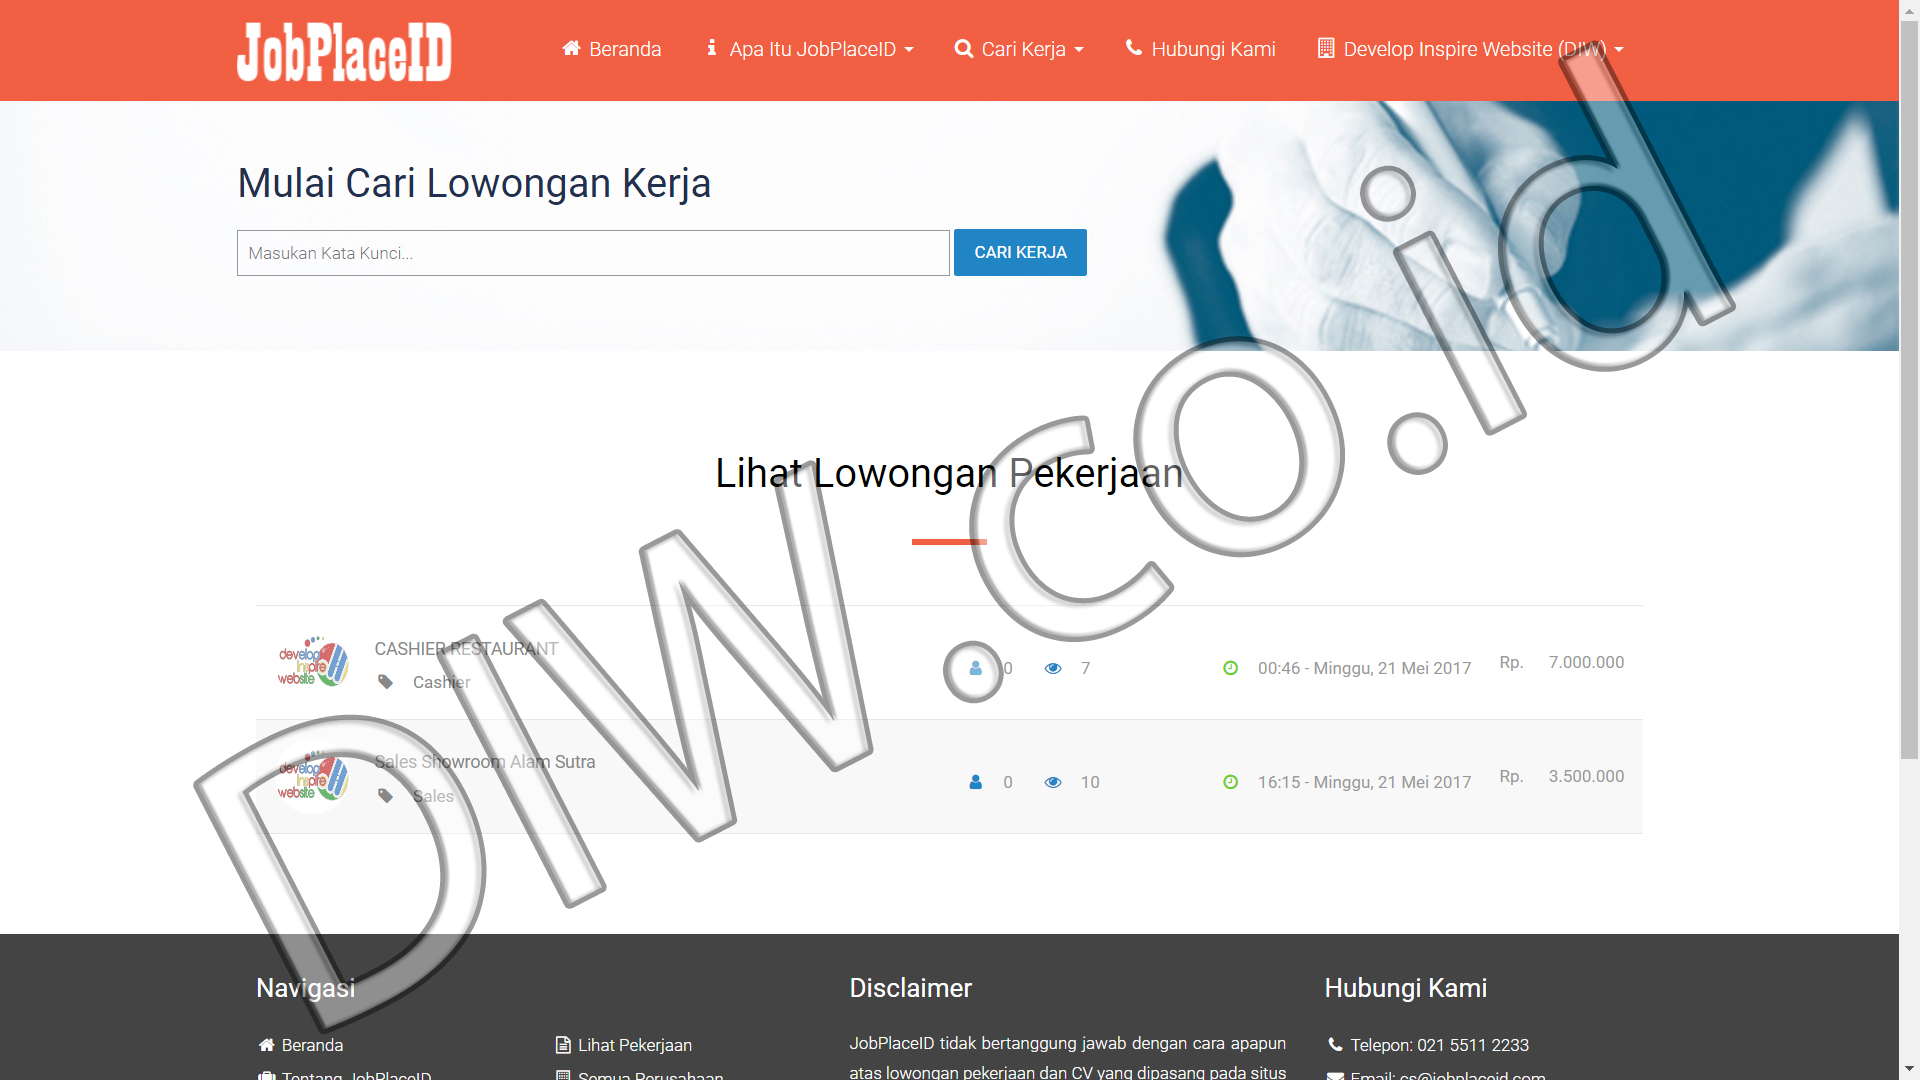 Portfolio 4 - Job Place ID - Andri Sunardi - Freelancer - Web Developer - CEO DIW.co.id